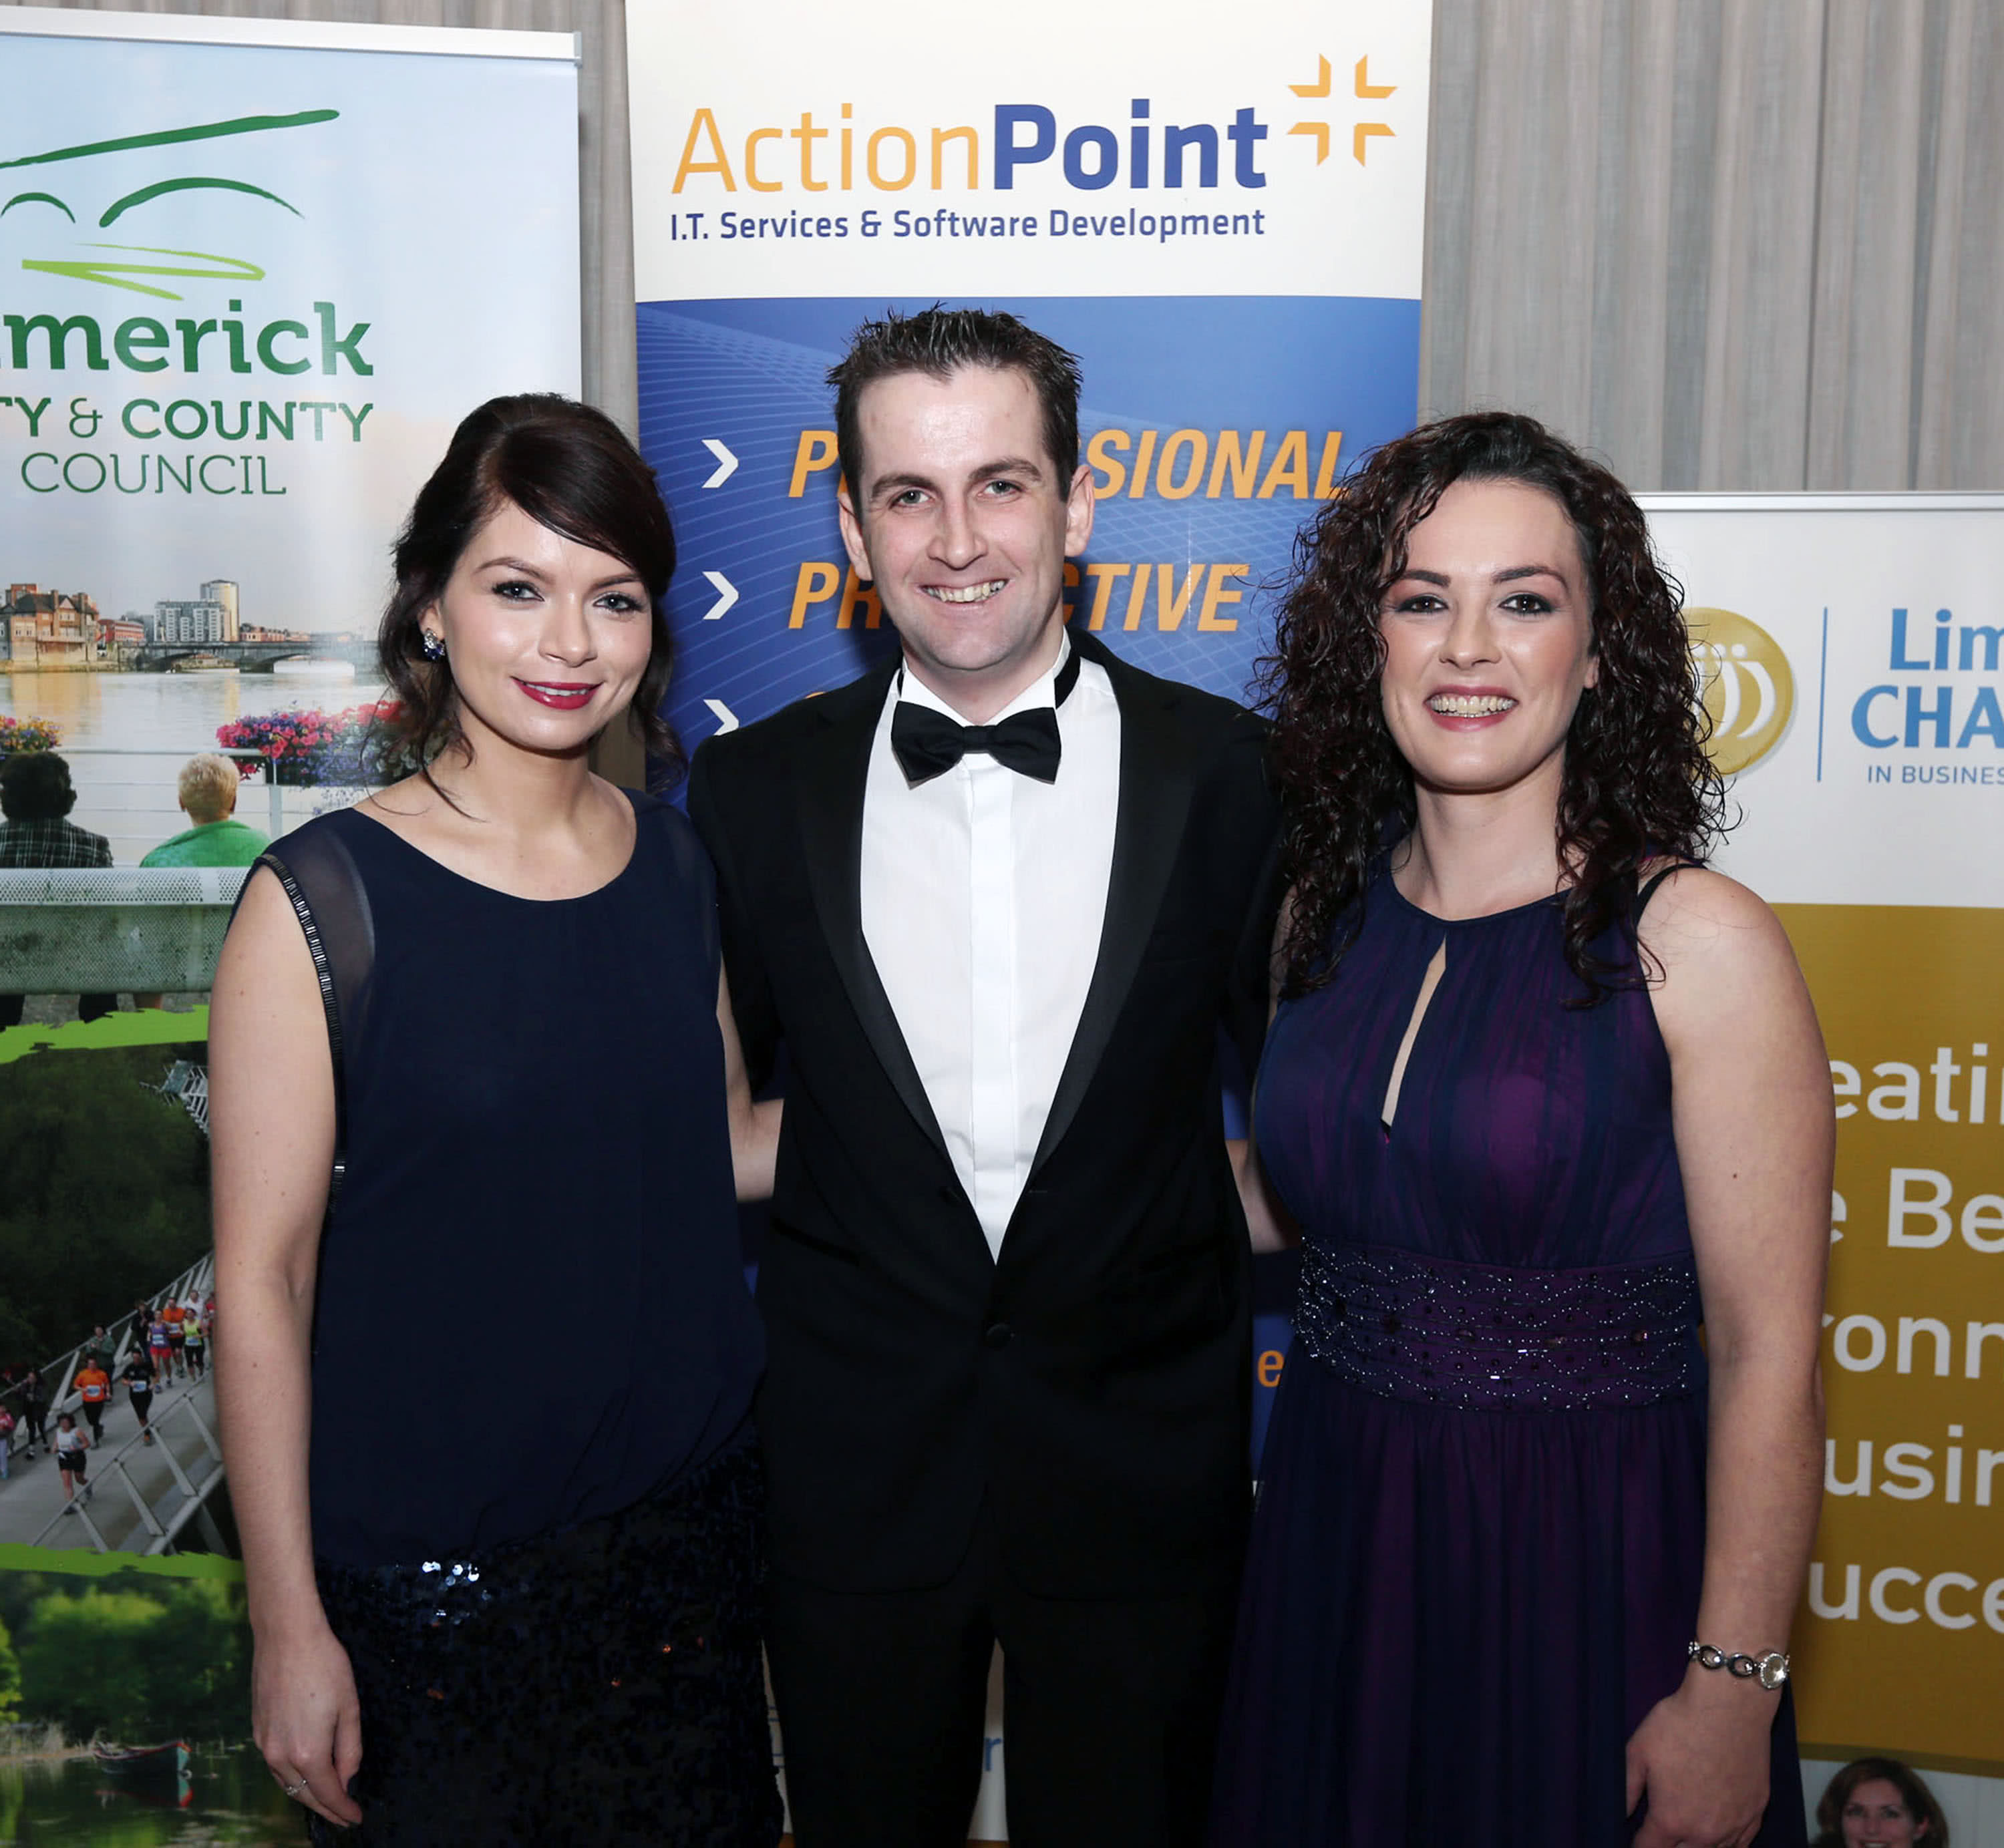 Miriam O'Brien, Marketing Manager, John Savage, Technical Director, Michelle Leo, Head of IT Services, Action Point